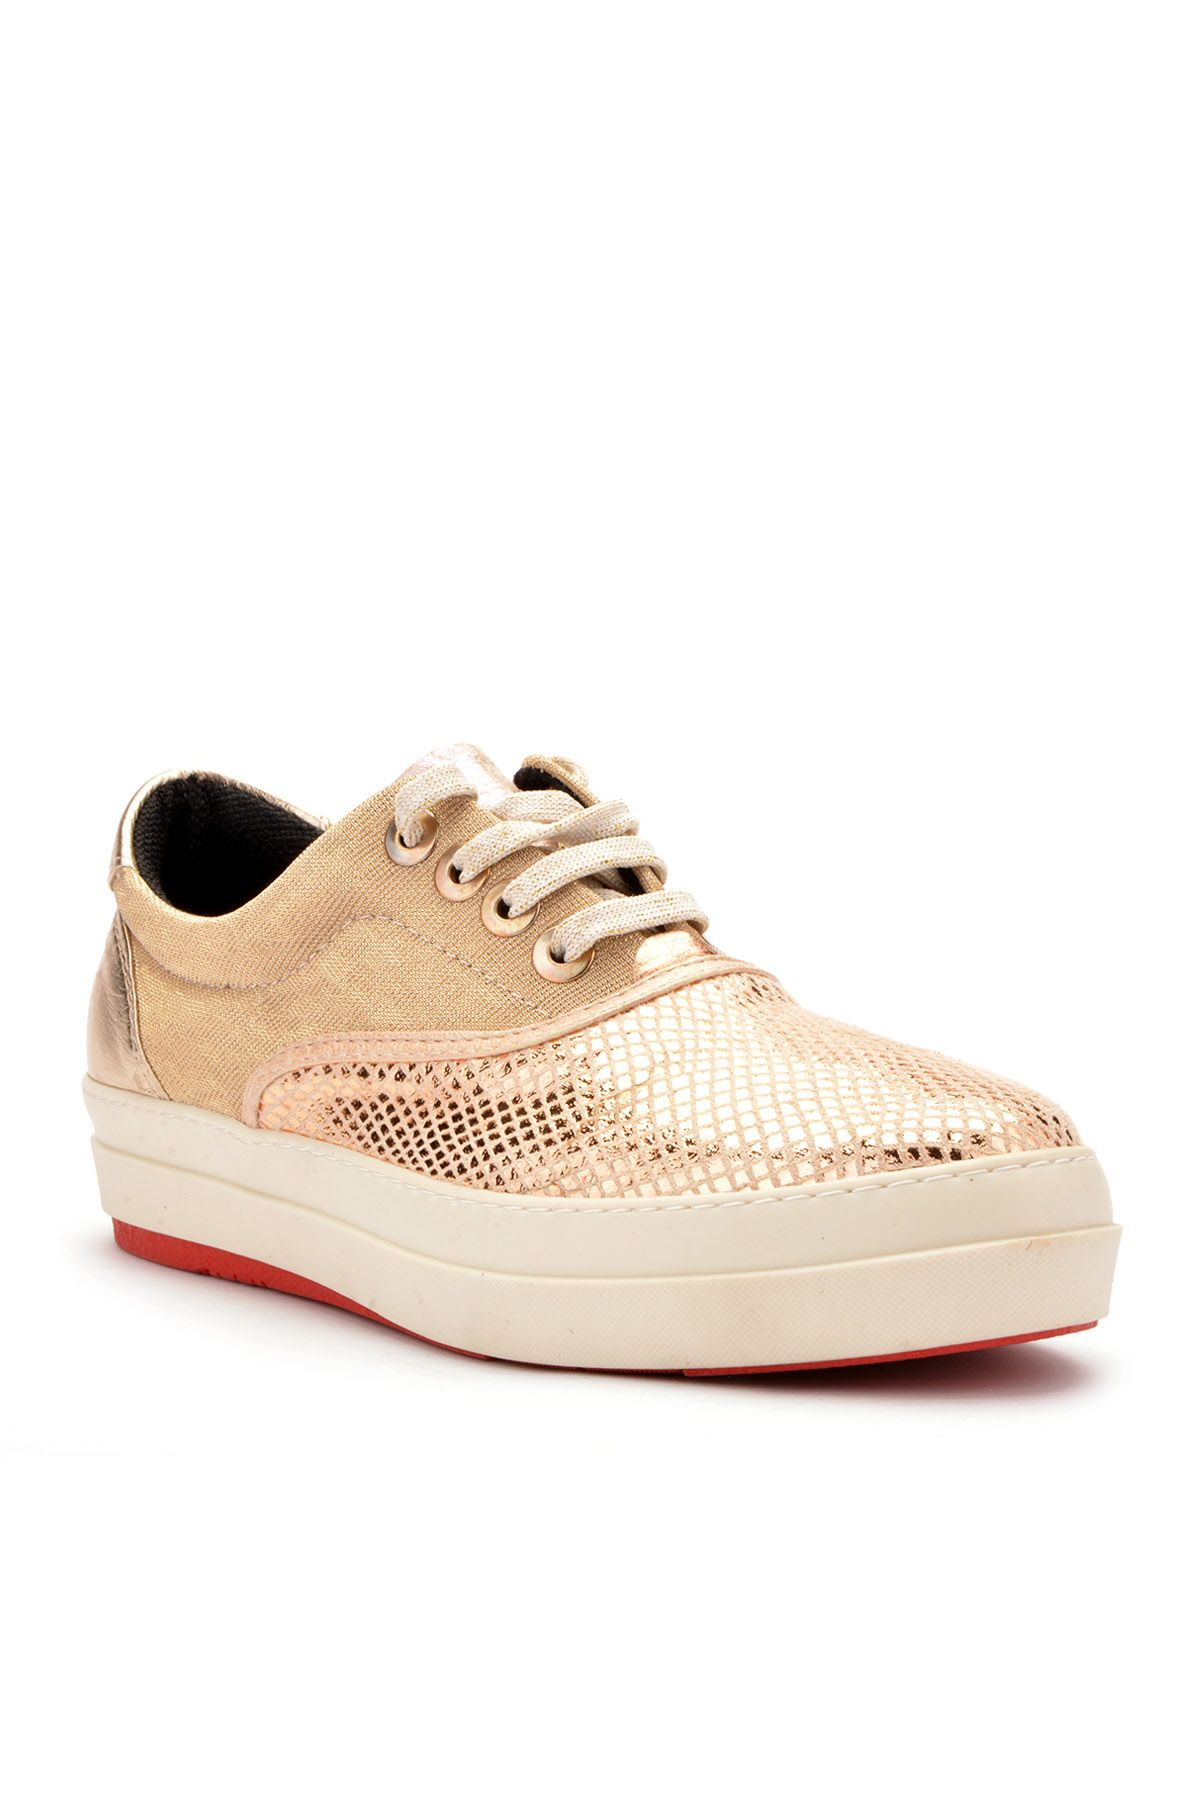 Art Goya Casual Women Shoes With Hologramme Beige